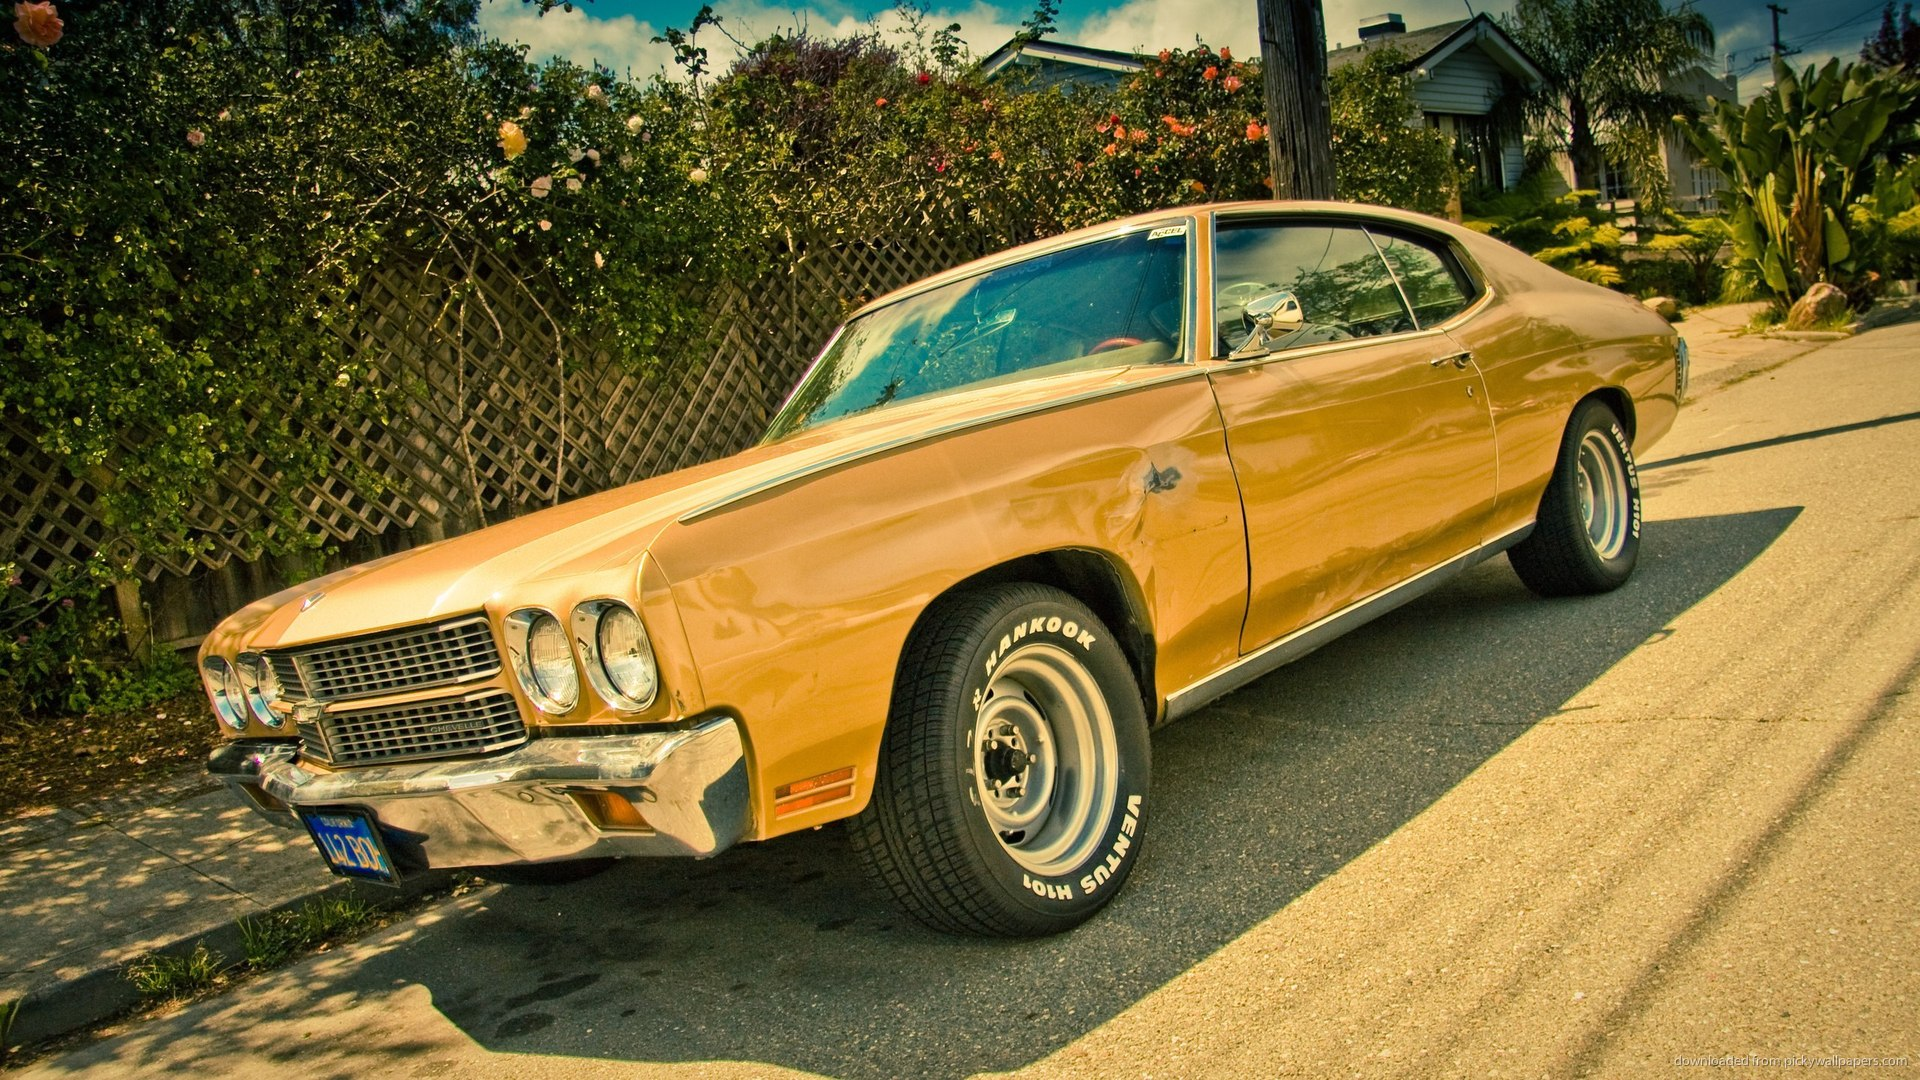 1970 Chevrolet Chevelle SS Wallpaper For iPhone 4 1920x1080